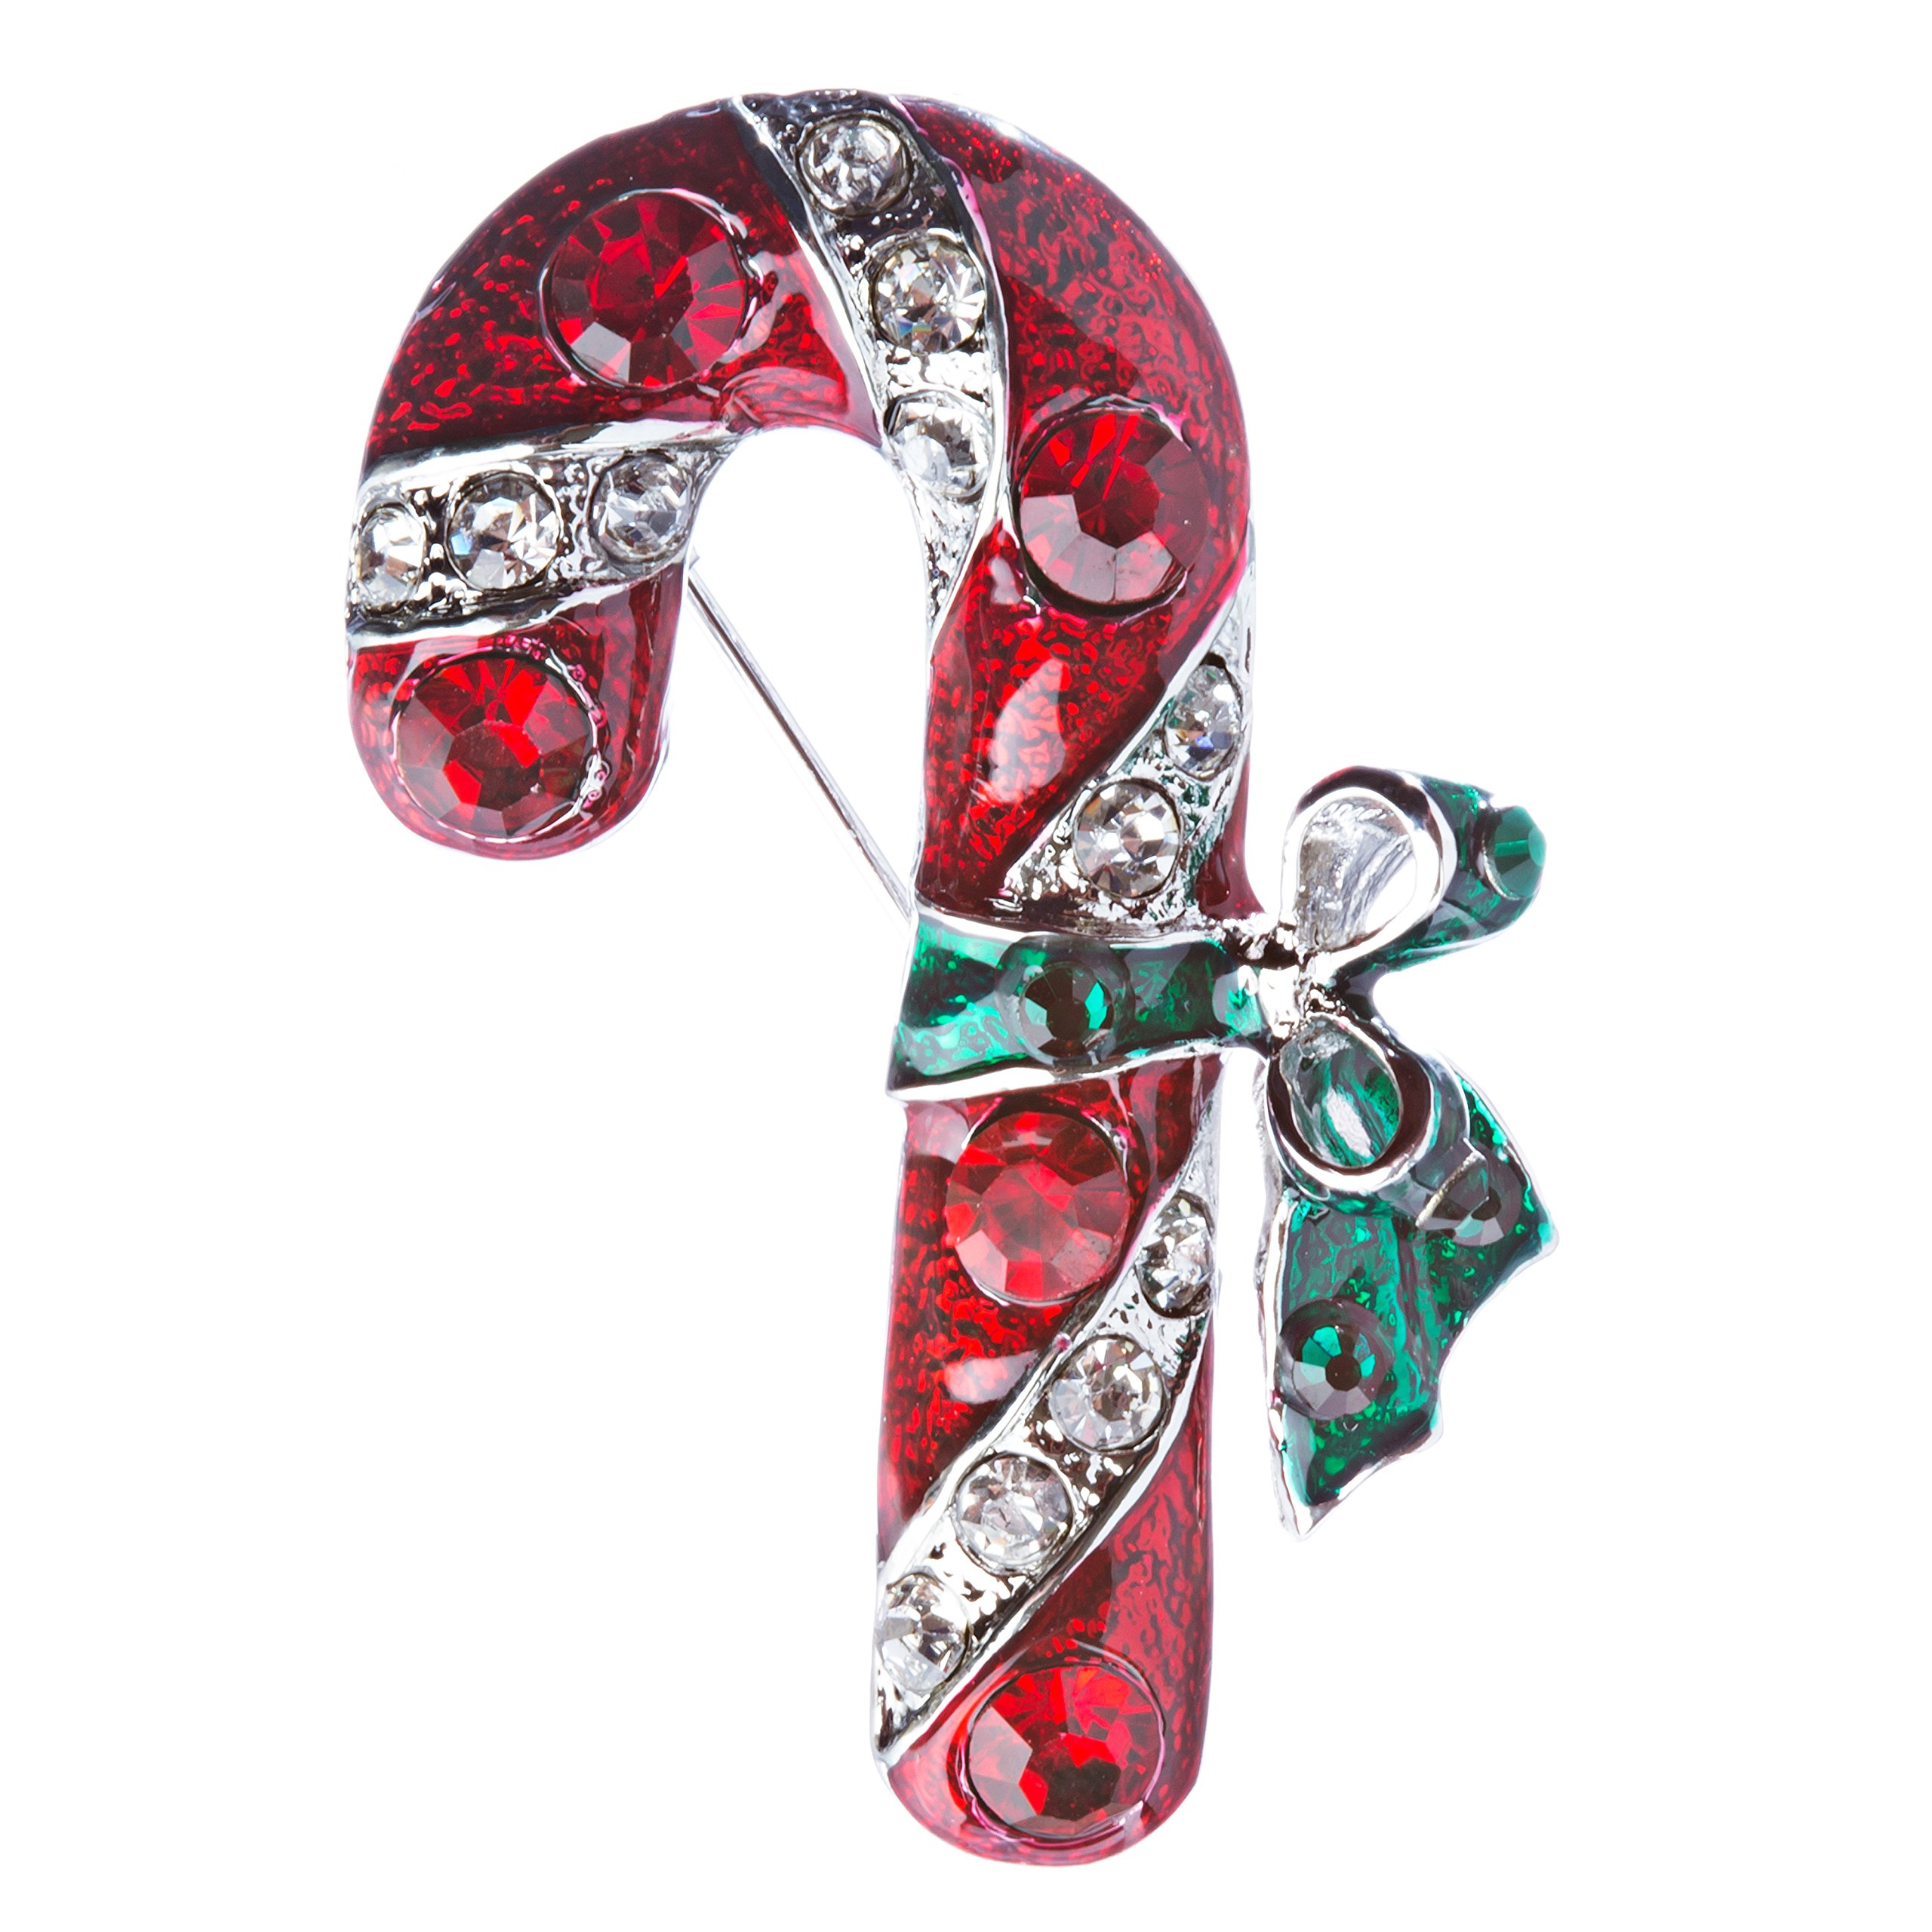 ACCESSORIESFOREVER Women Christmas Jewelry Crystal Rhinestone Holiday Candy Cane Brooch Pin BH126 Silver